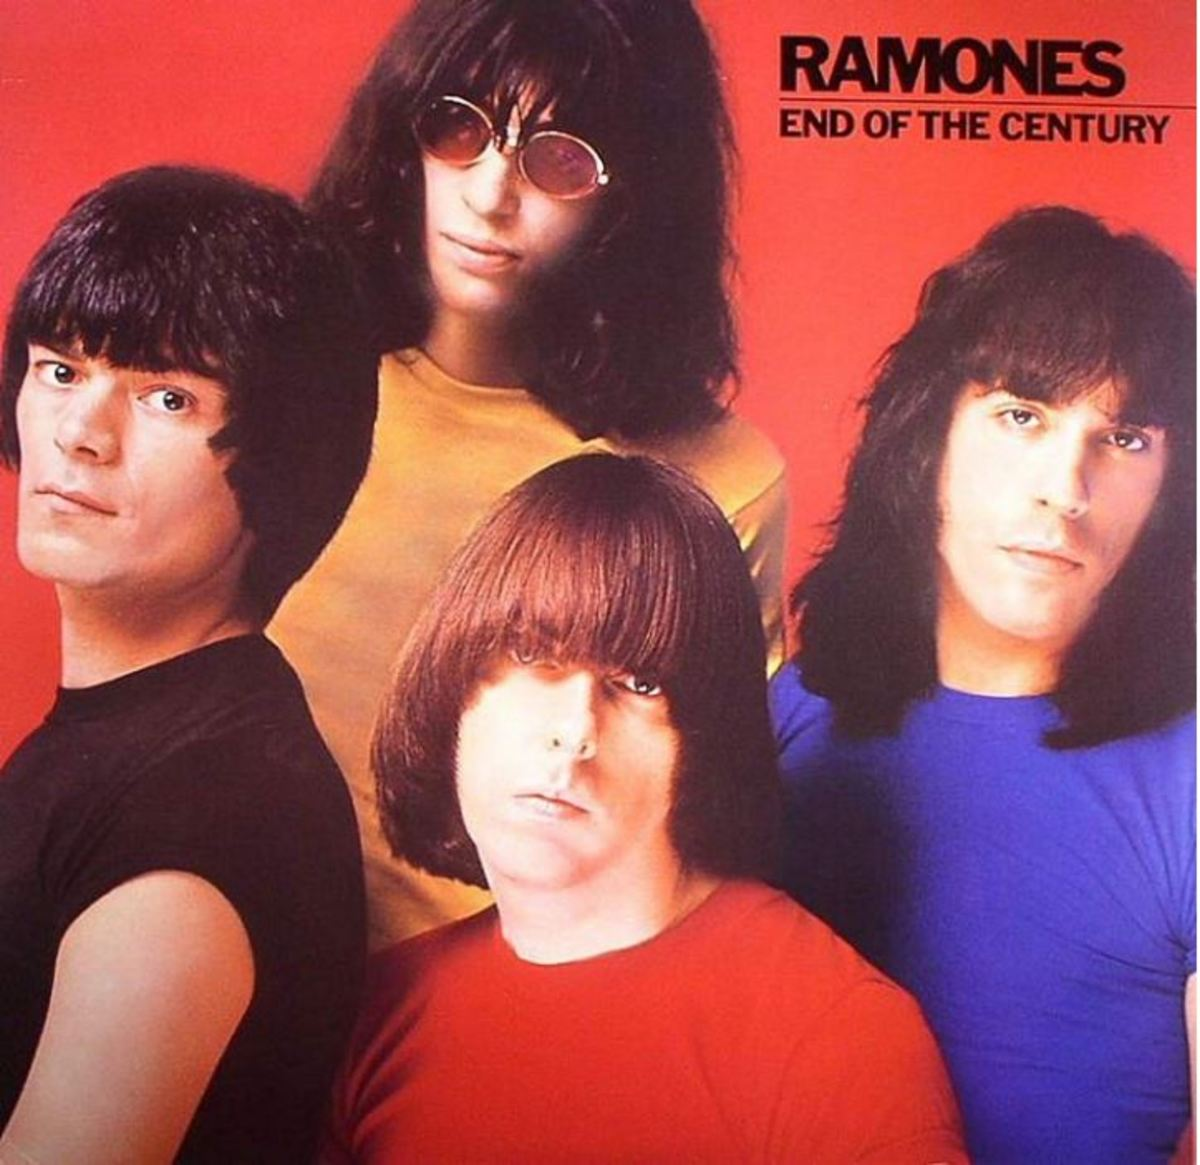 """Cover art for the Ramones' album, """"End of the Century."""""""